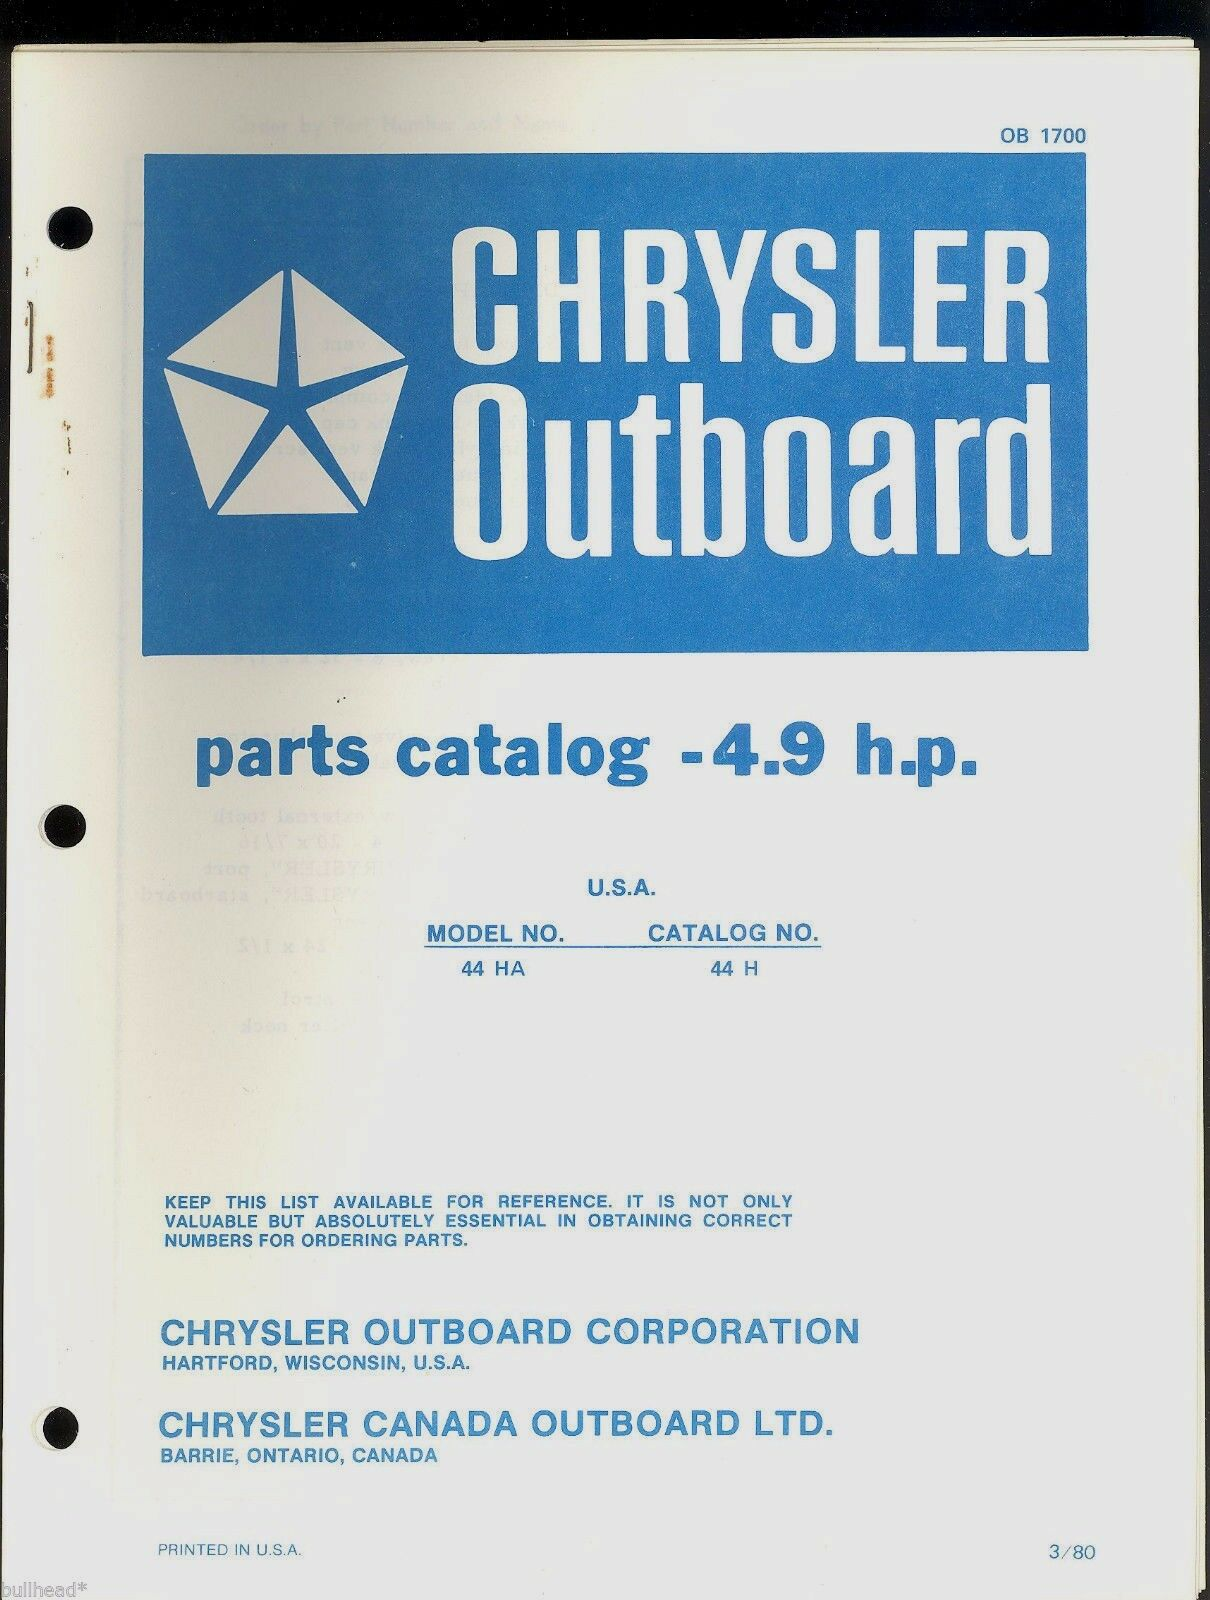 1980 Chrysler 49hp Outboard Motor Parts Manual Ob 1700 1499 Diagrams 1 Of 2only Available